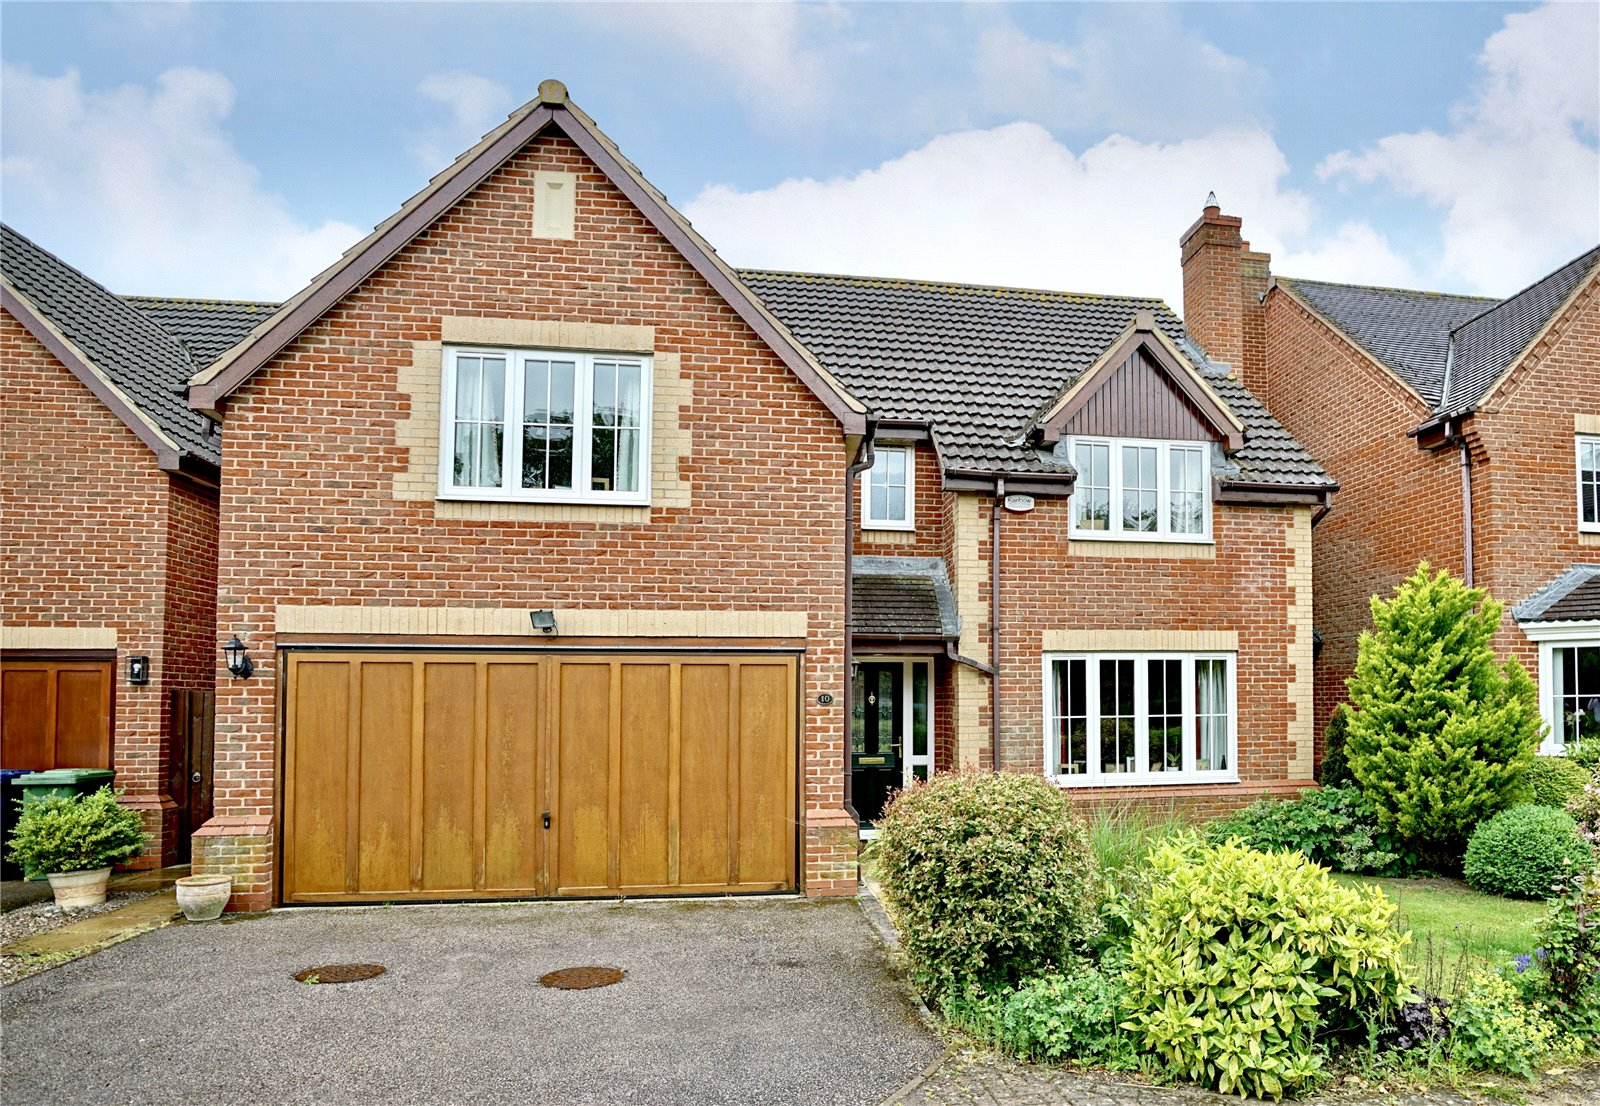 4 bed house for sale in Great Gransden, SG19